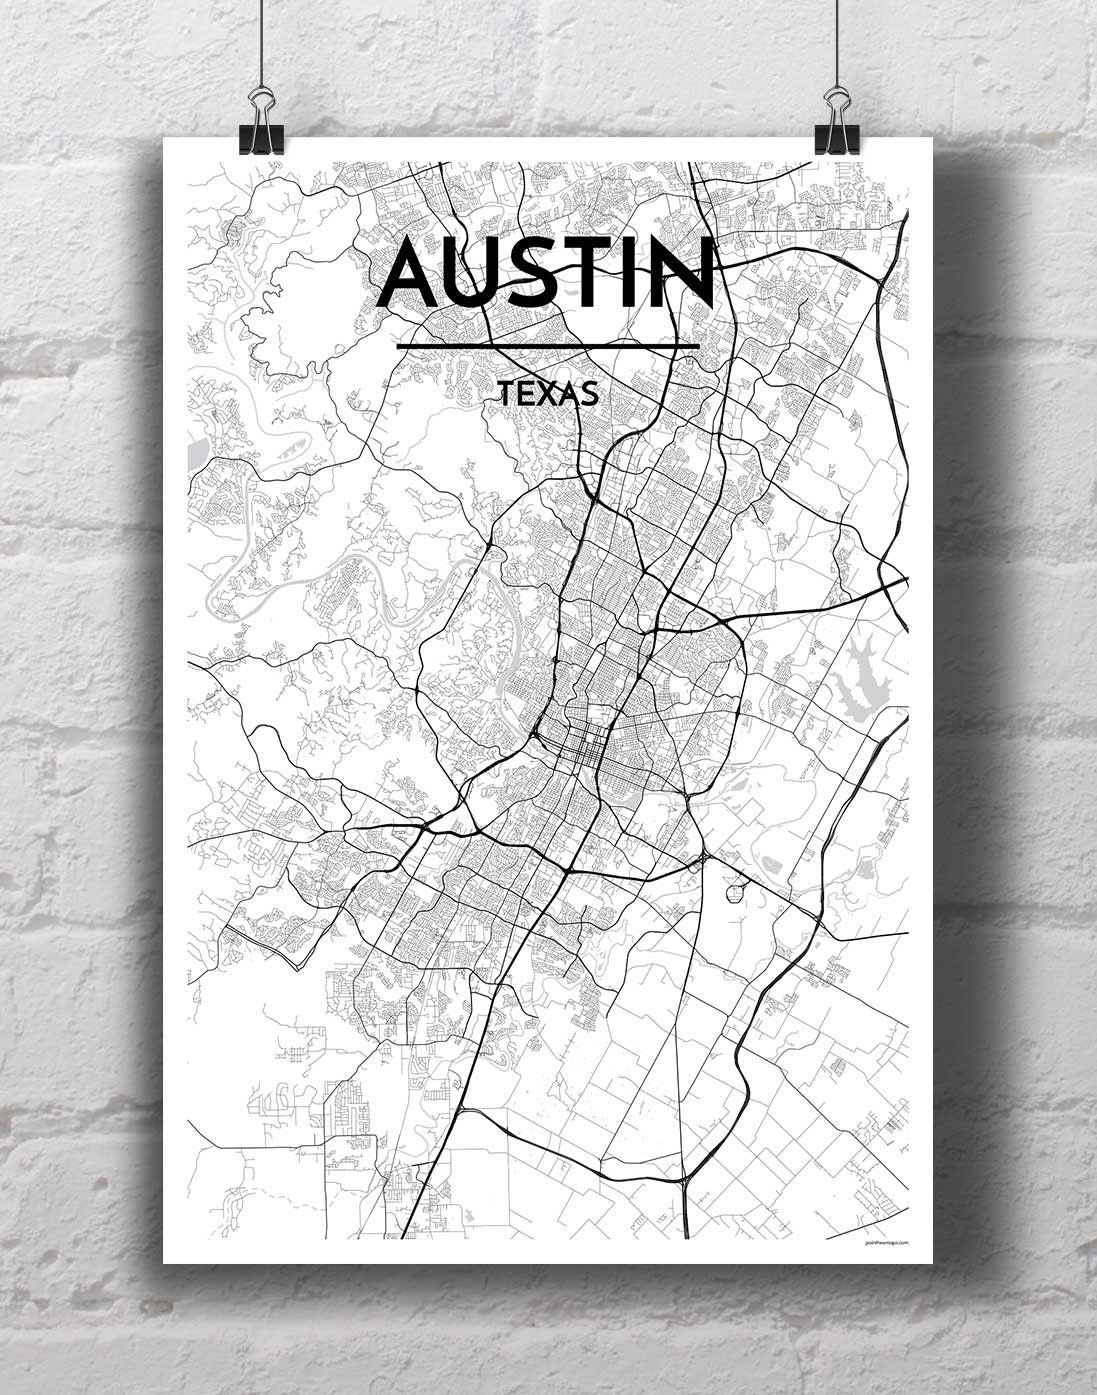 Austin City Map | Brad | Pinterest | City maps, Walls and Products